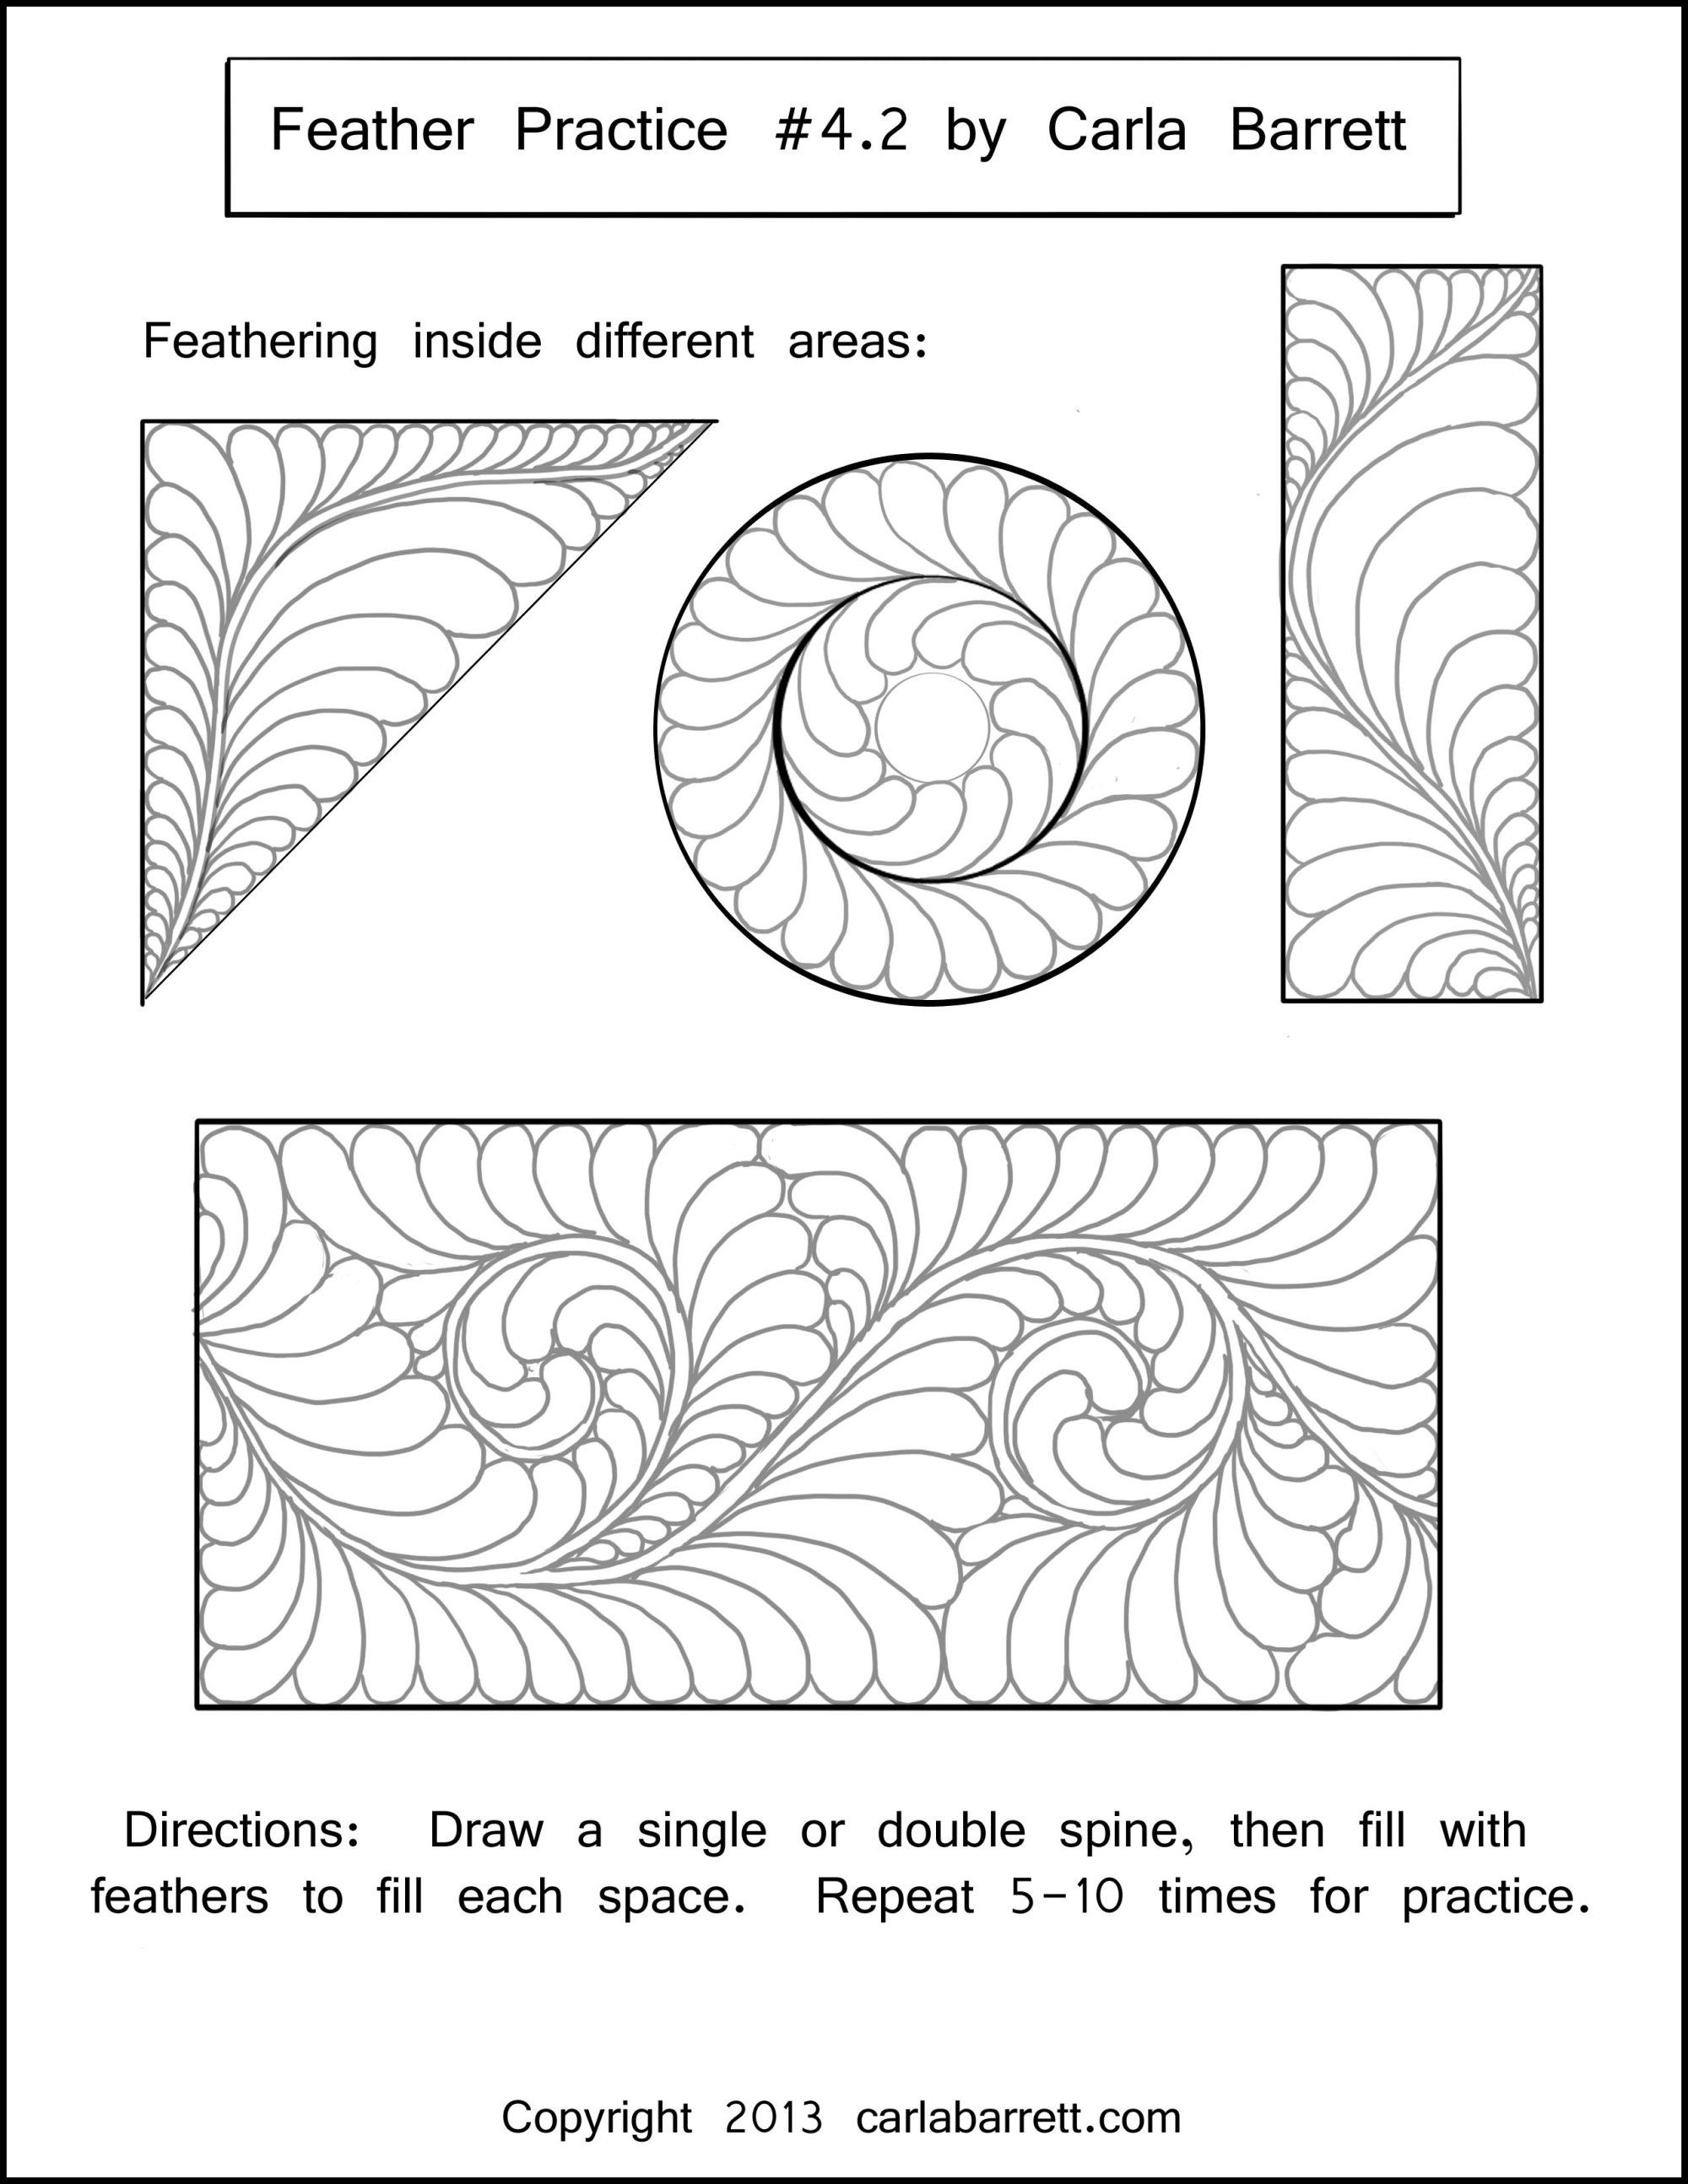 Worksheet Example By Carla Barrett